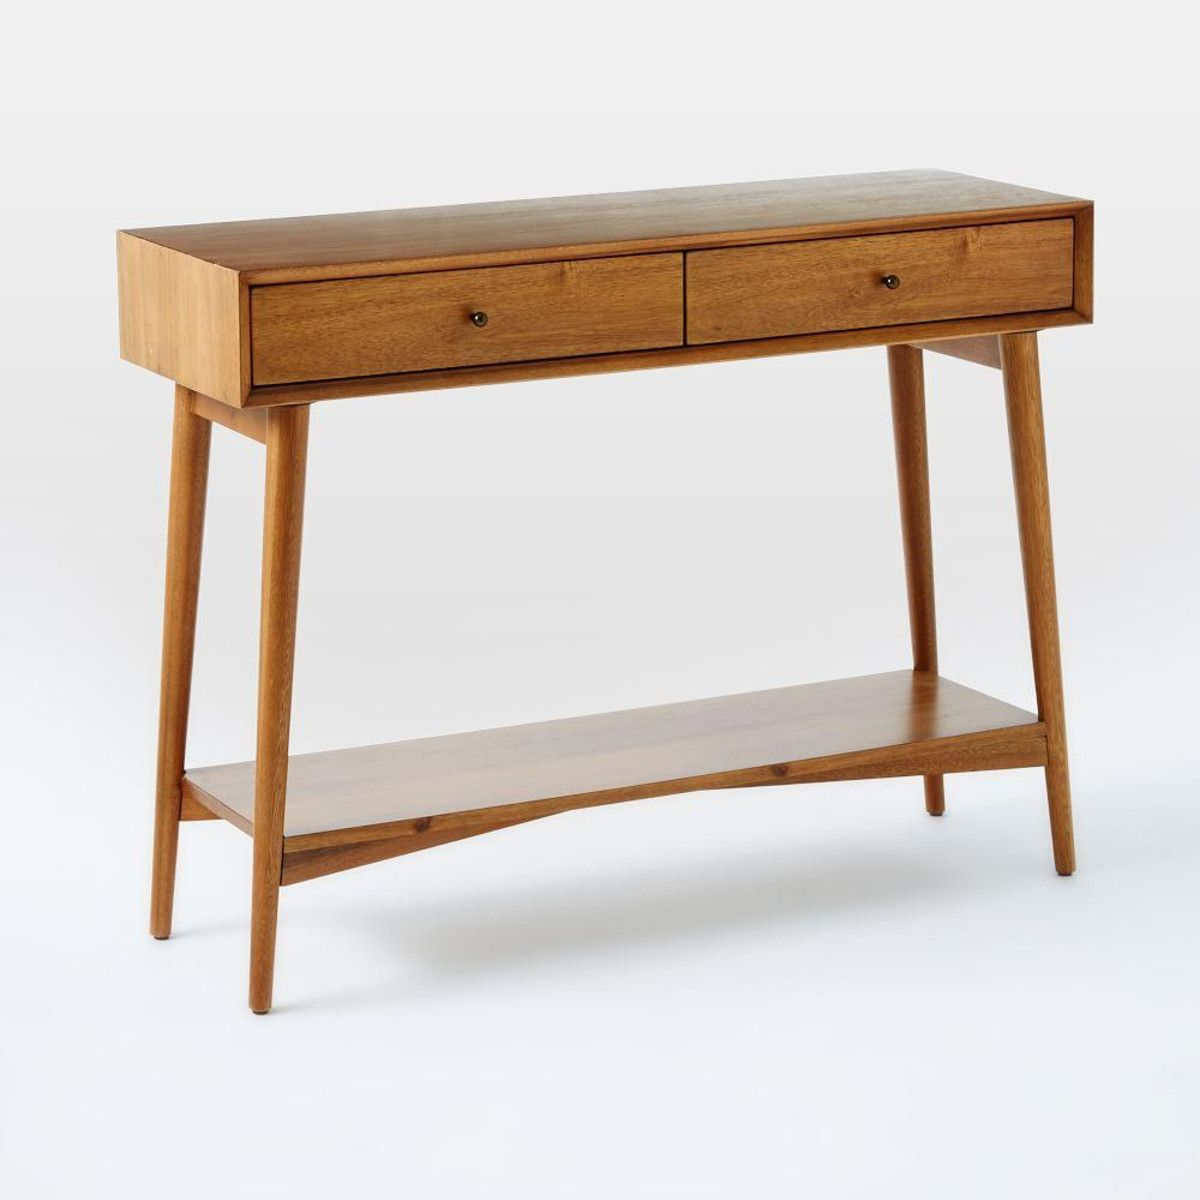 Mid century console home objects pieces pinterest mid century console geotapseo Image collections